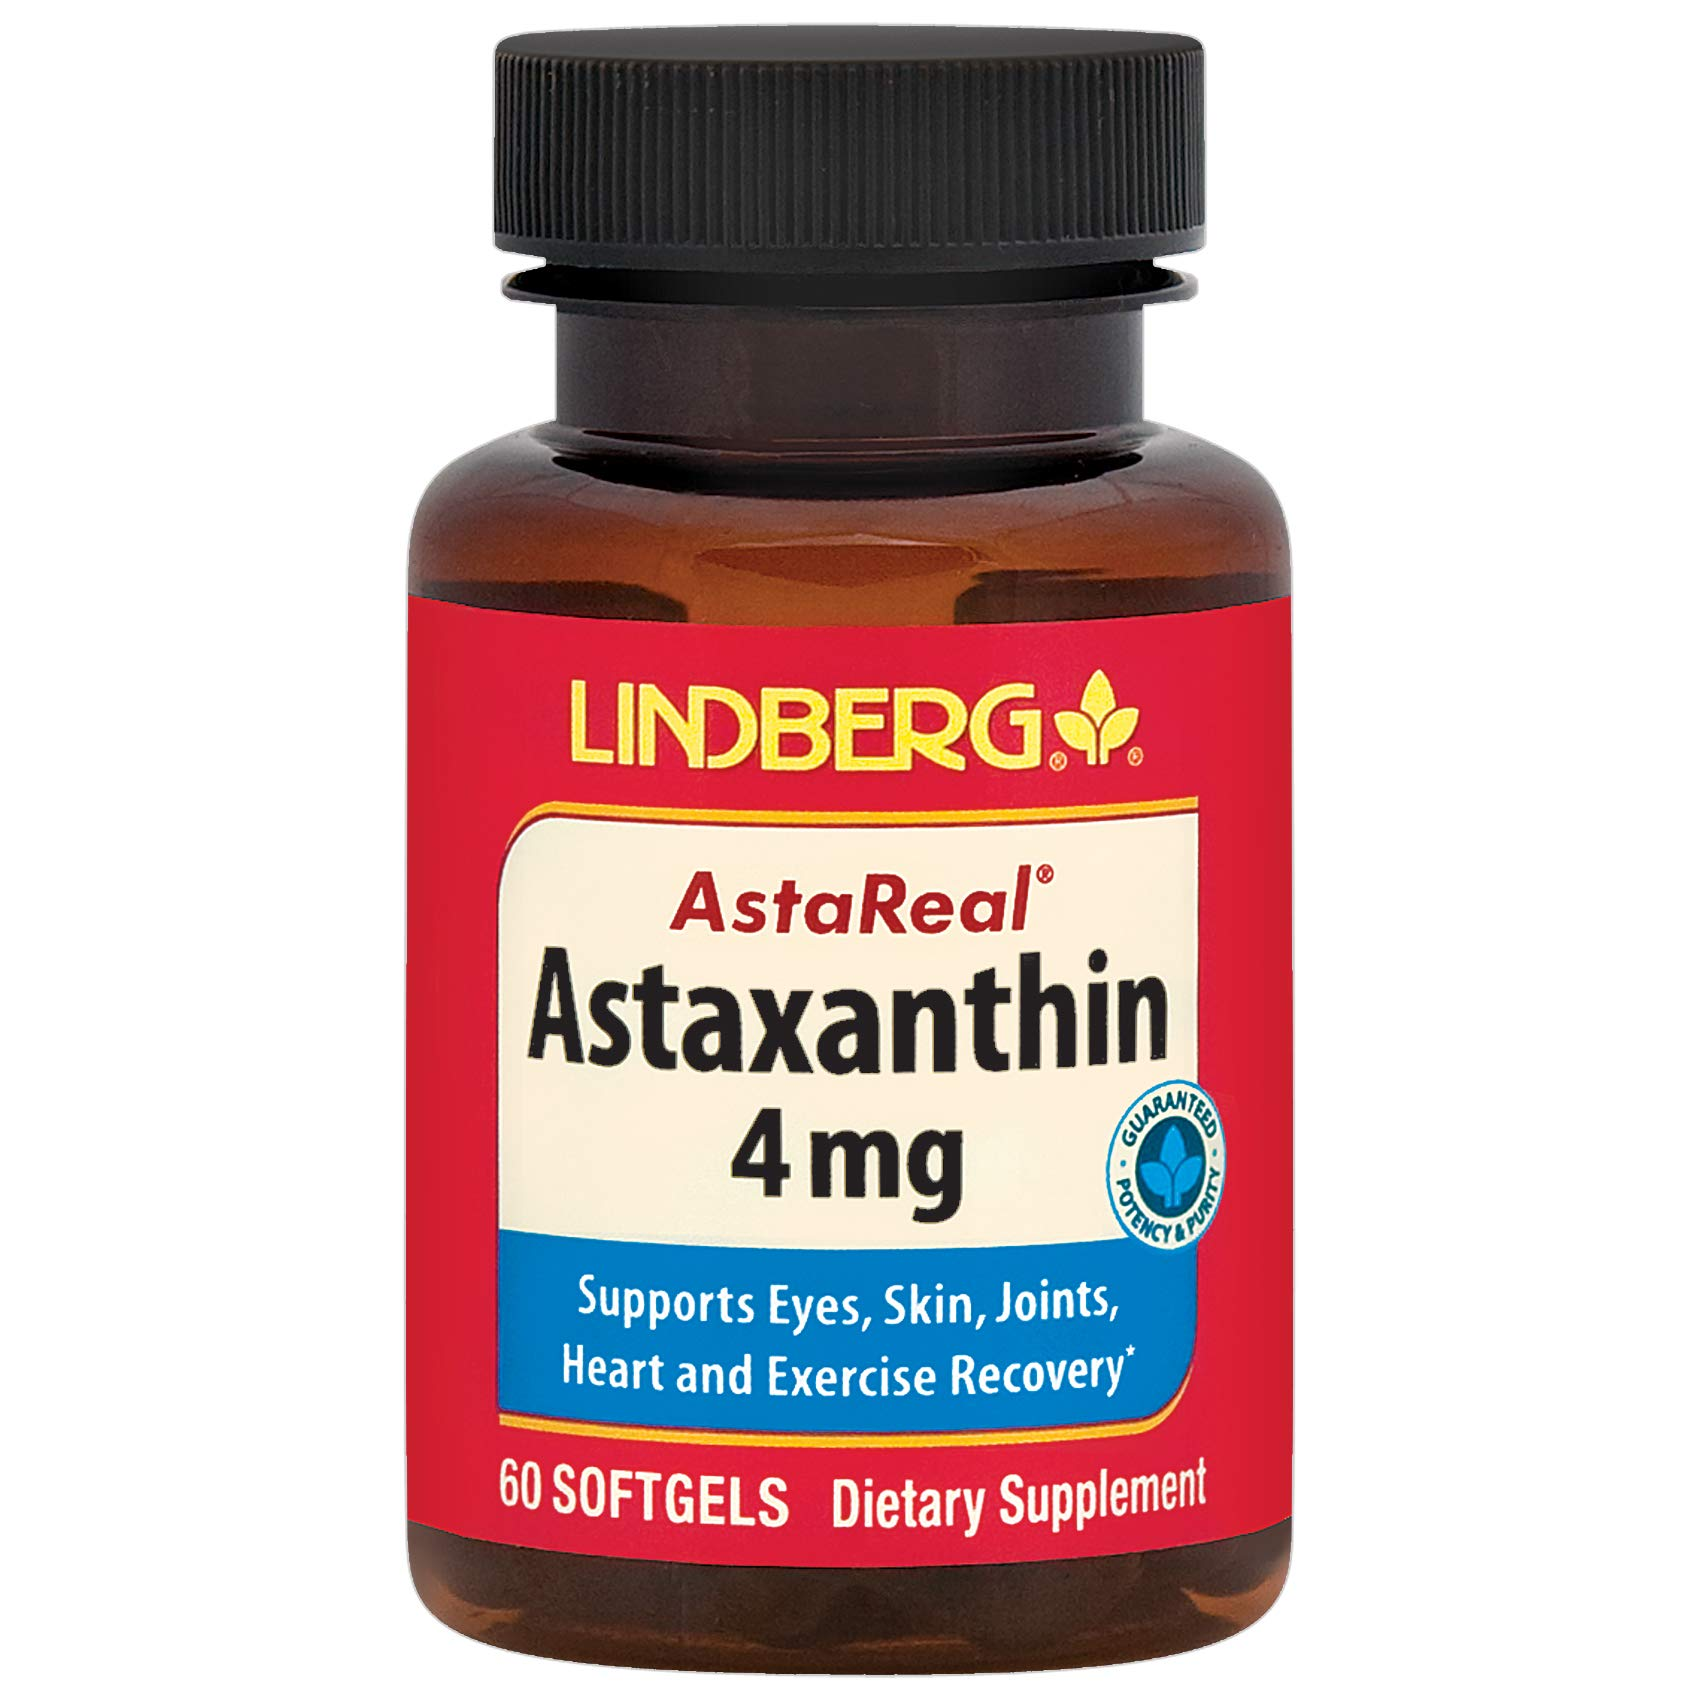 Lindberg Astaxanthin 4 Mg - Supports Eyes, Skin, Joints, Heart and Exercise Recovery - 60 Softgels